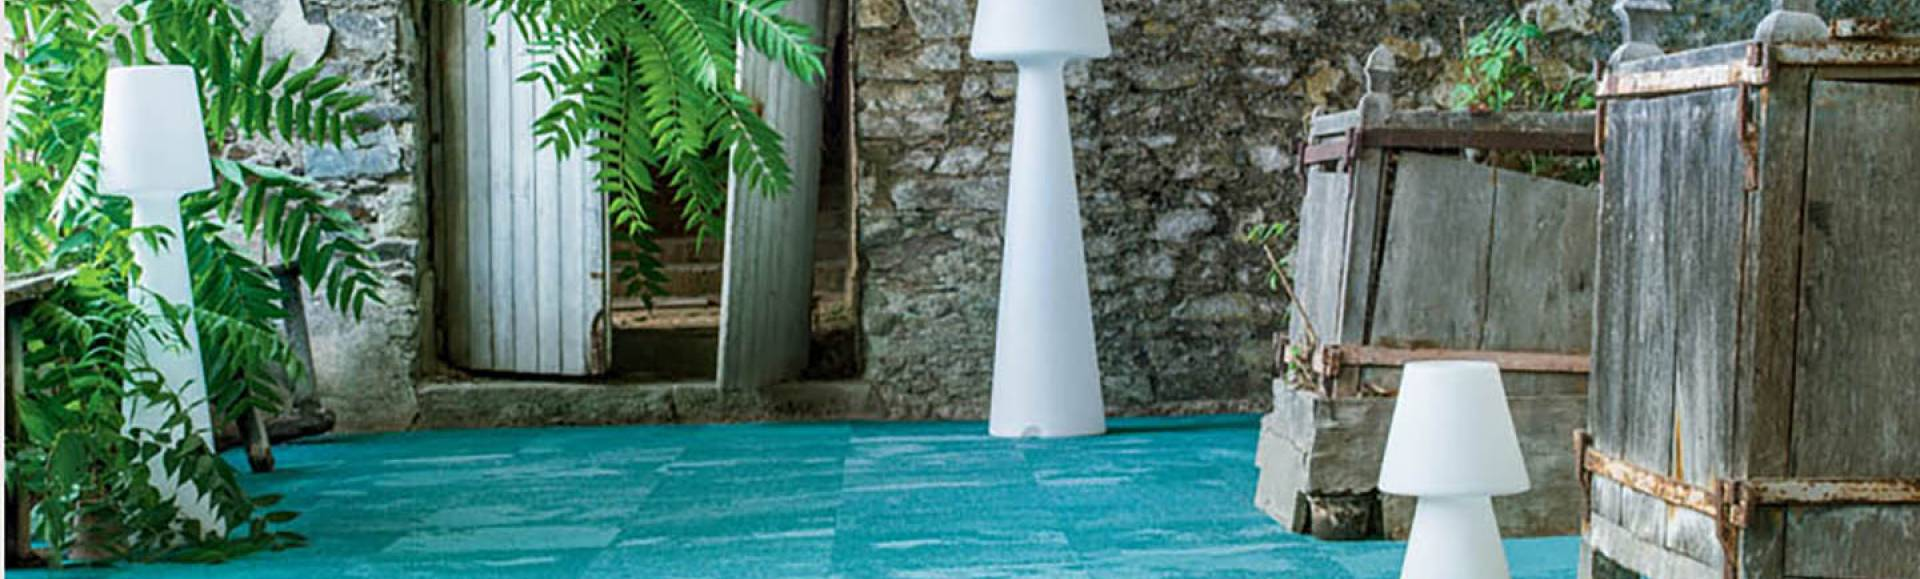 Collection Infini colors moquette dalle Stone age